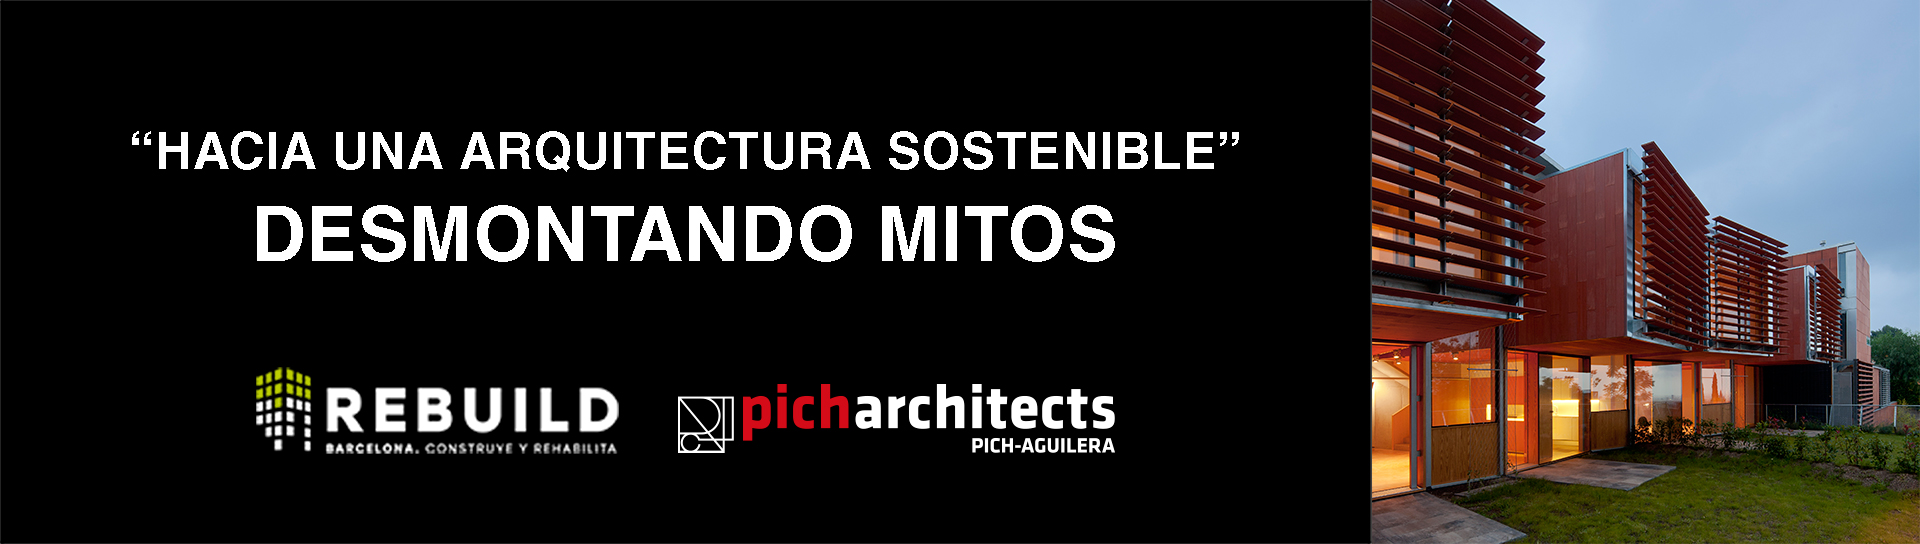 Hacia una Arquitectura Sostenible Picharchitects